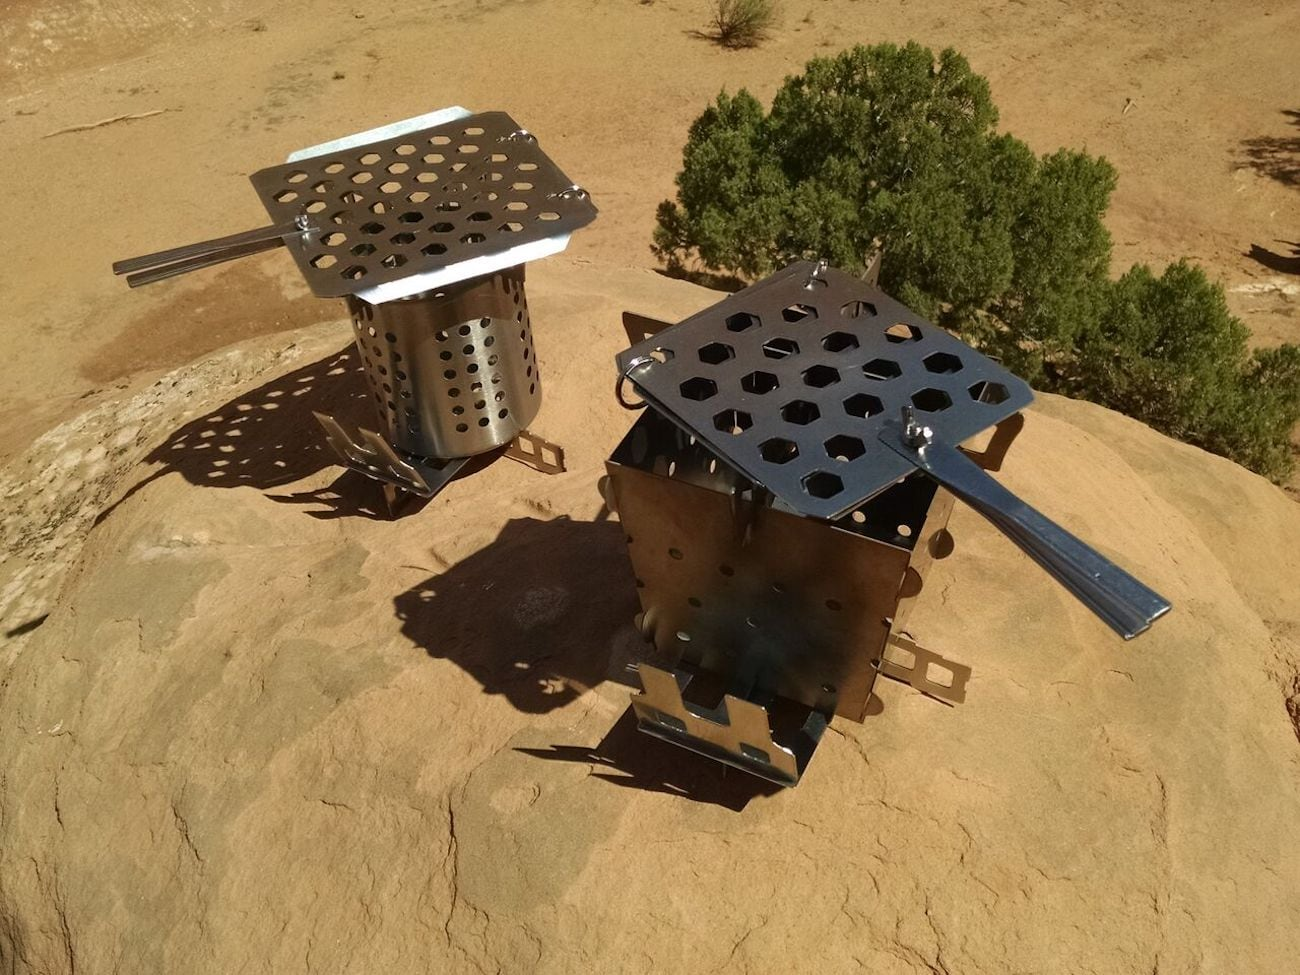 SIEGE Extreme Camp and Survival Stove